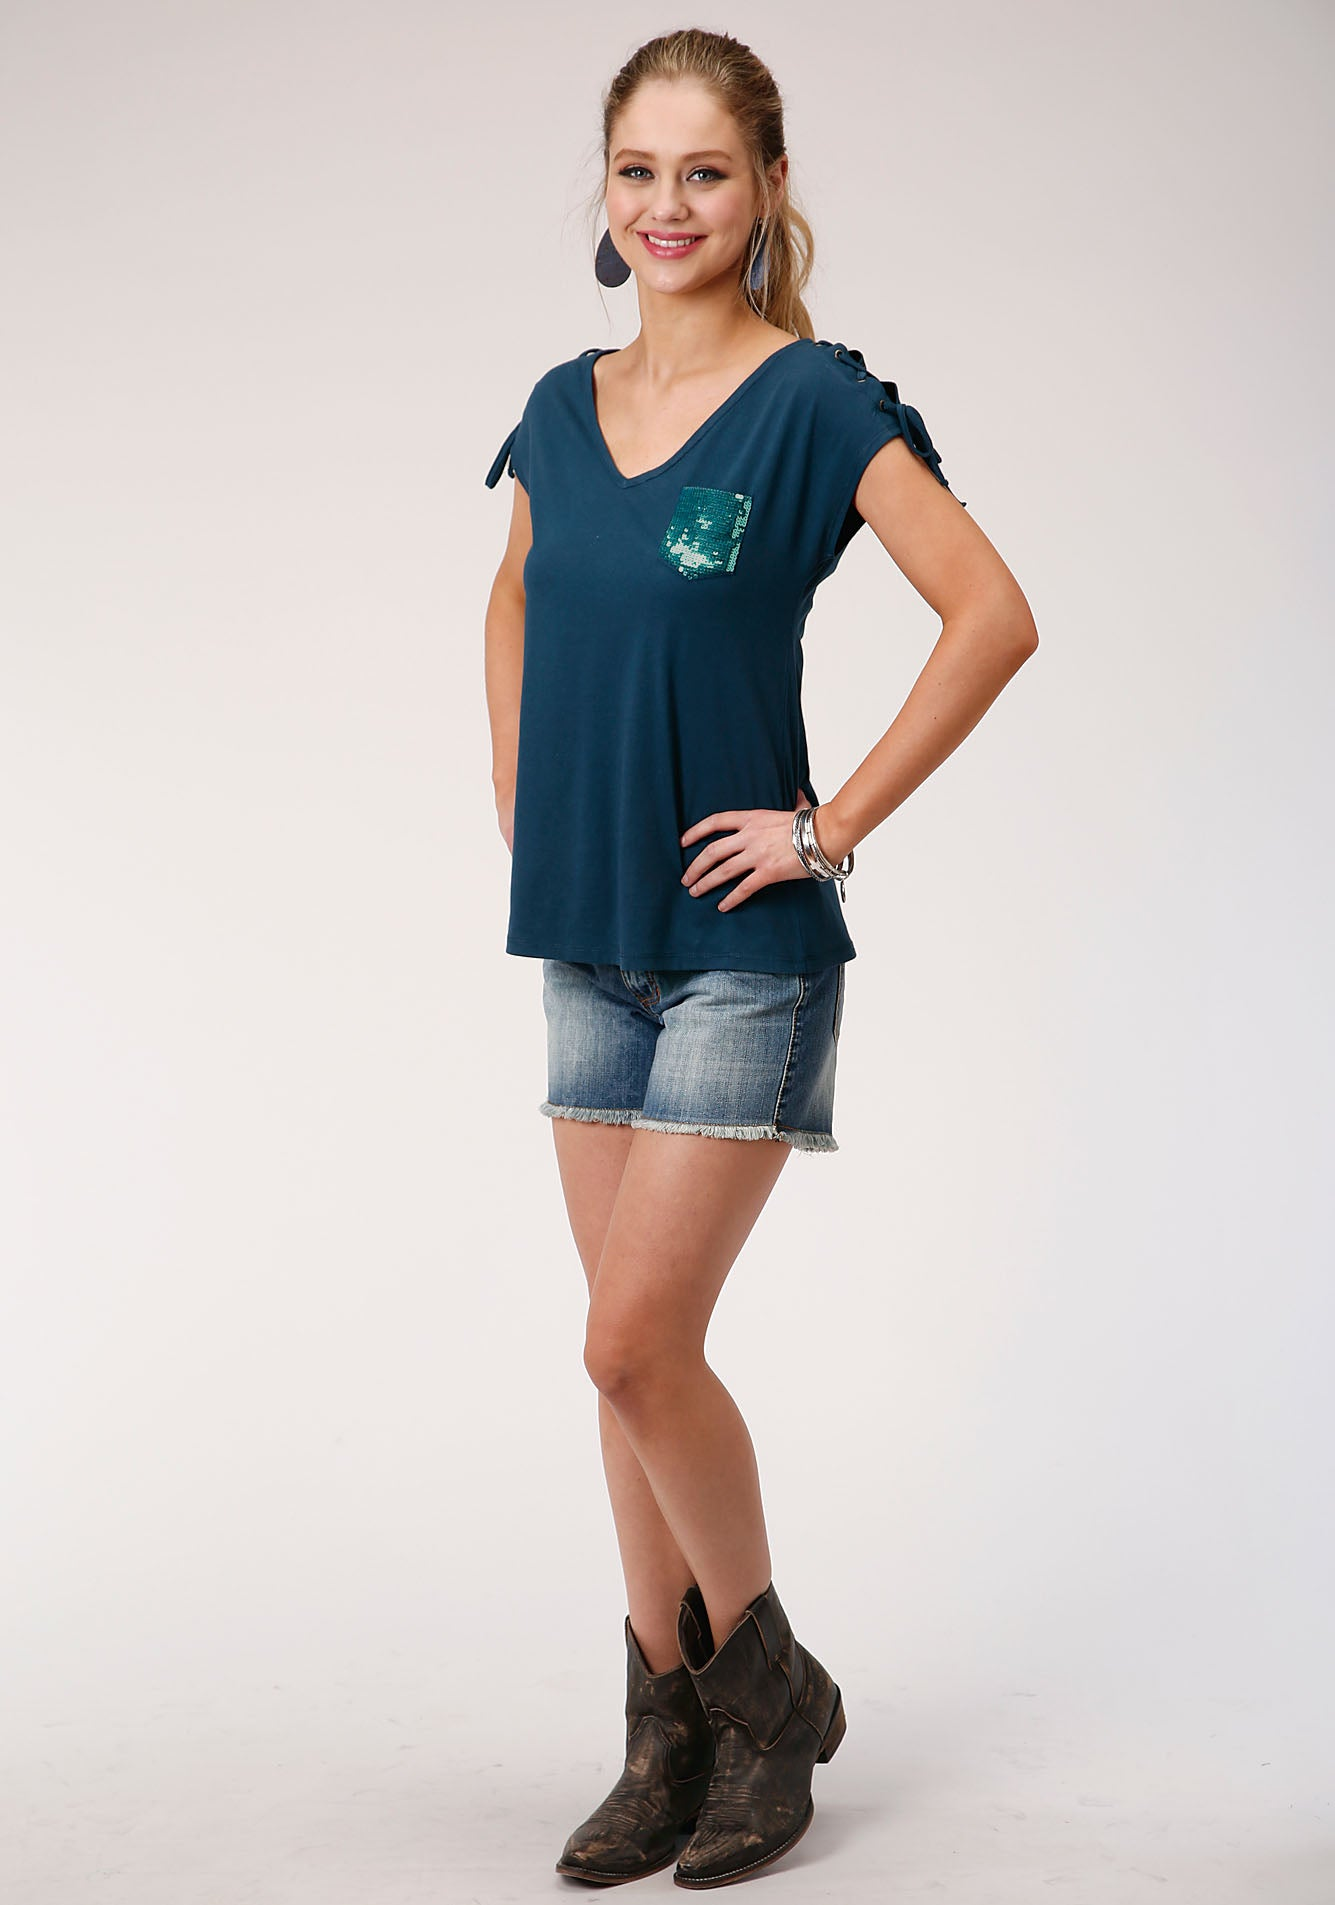 ROPER WOMENS BLUE 00133 POLY COTTON JERSEY TEE FIVE STAR COLLECTION- SPRING II SHORT SLEEVE